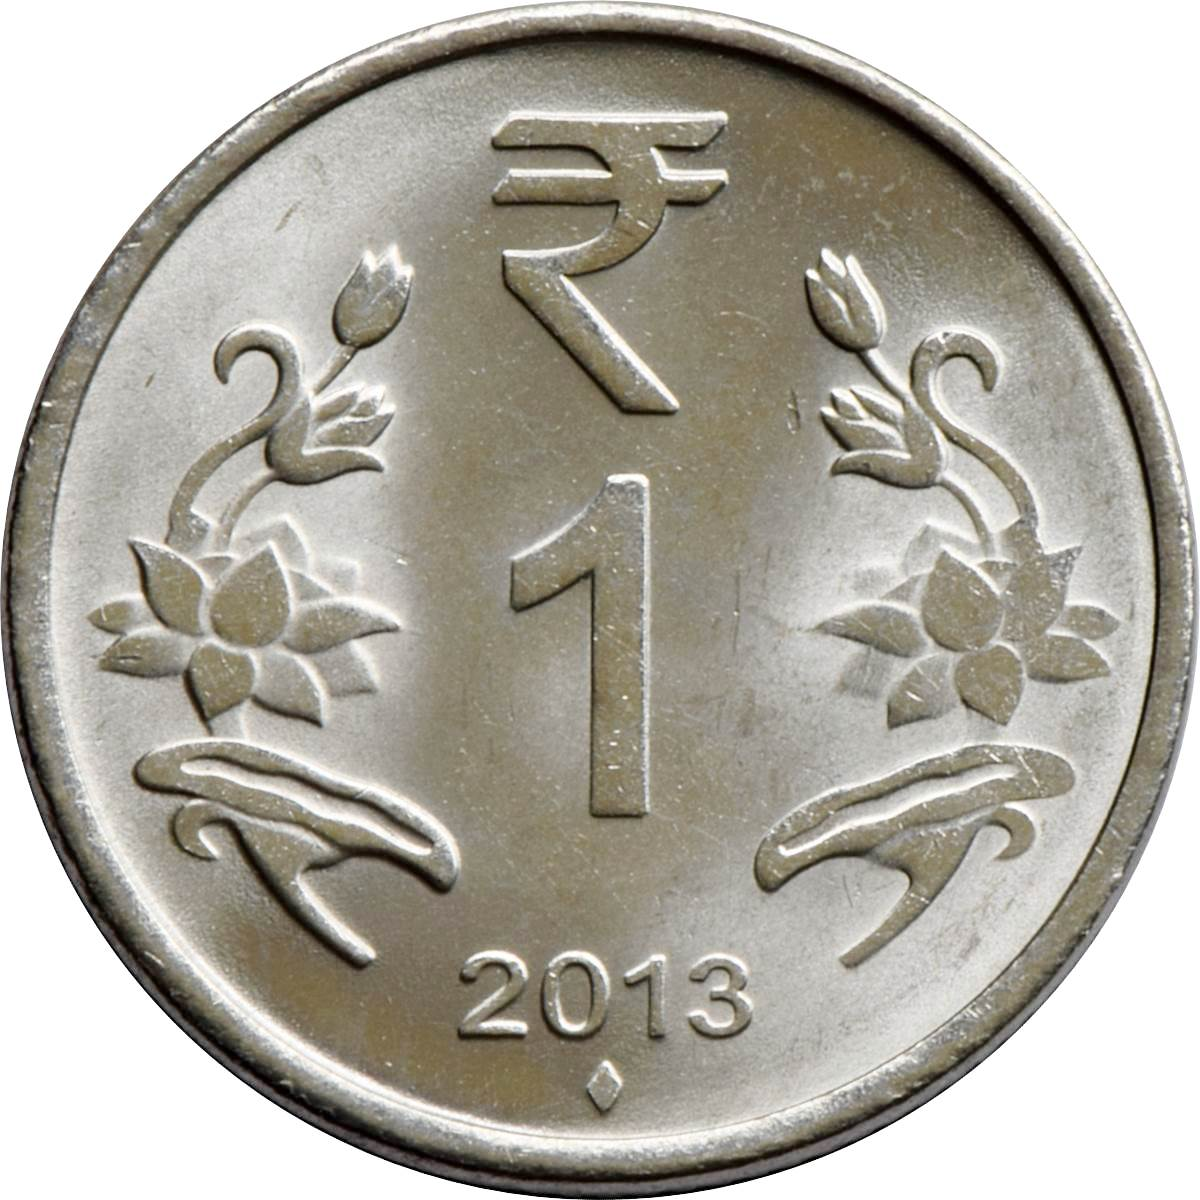 essay on autobiography of a rupee coin Autobiography of a ten rupee note select essay topics college essays (182) autobiography of ten rupee note.